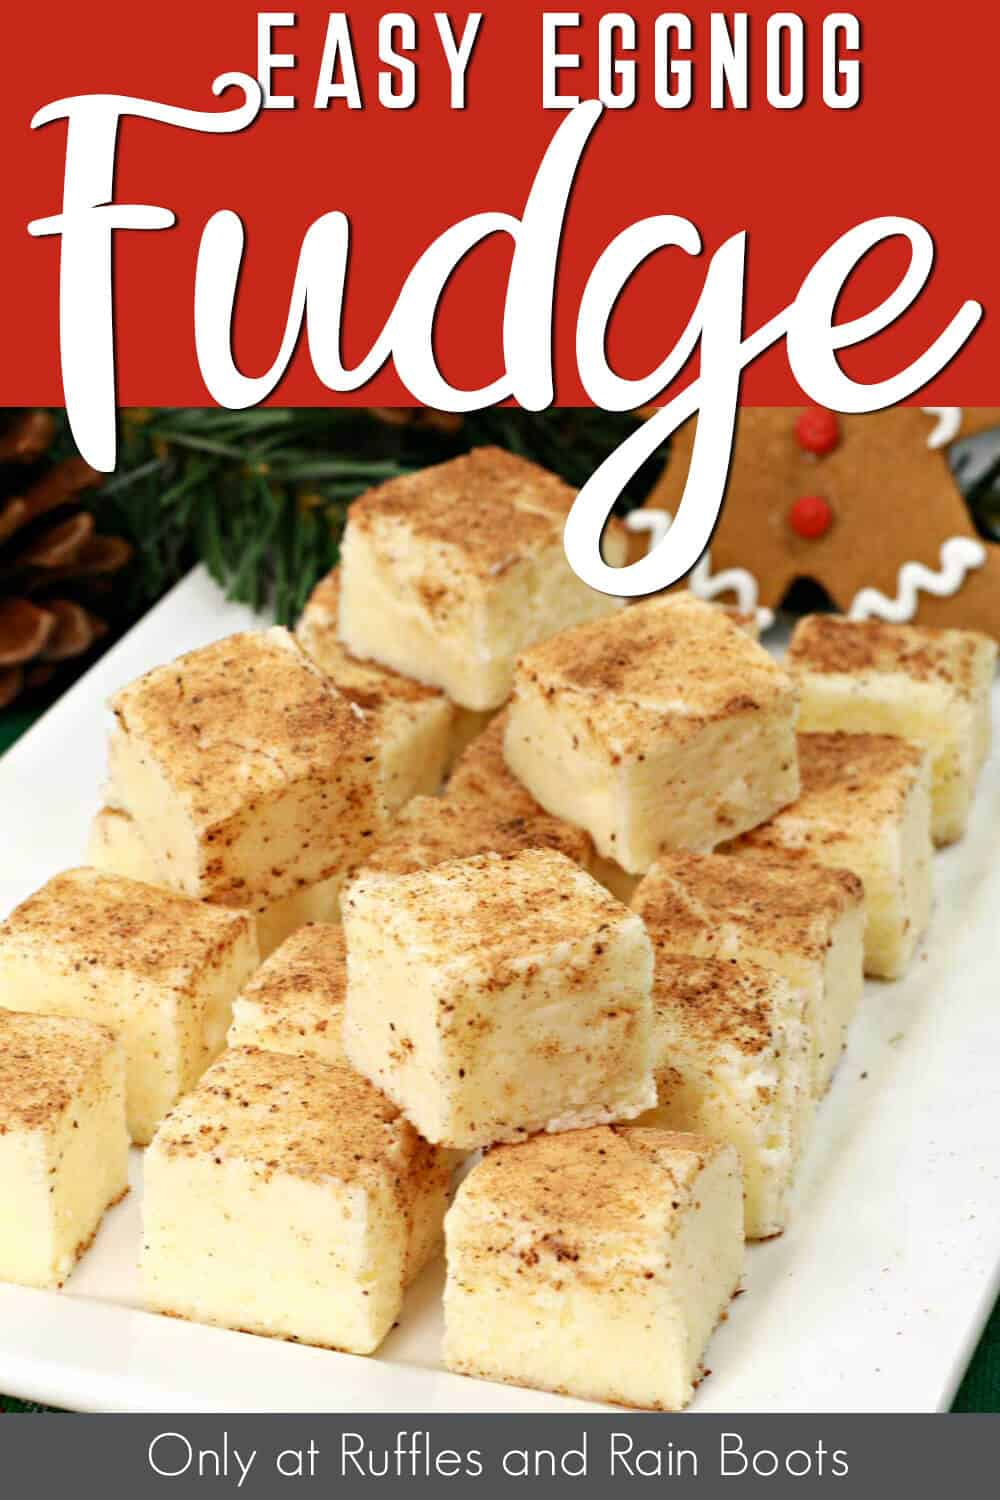 plate full of white chocolate fudge with text which reads easy eggnog fudge